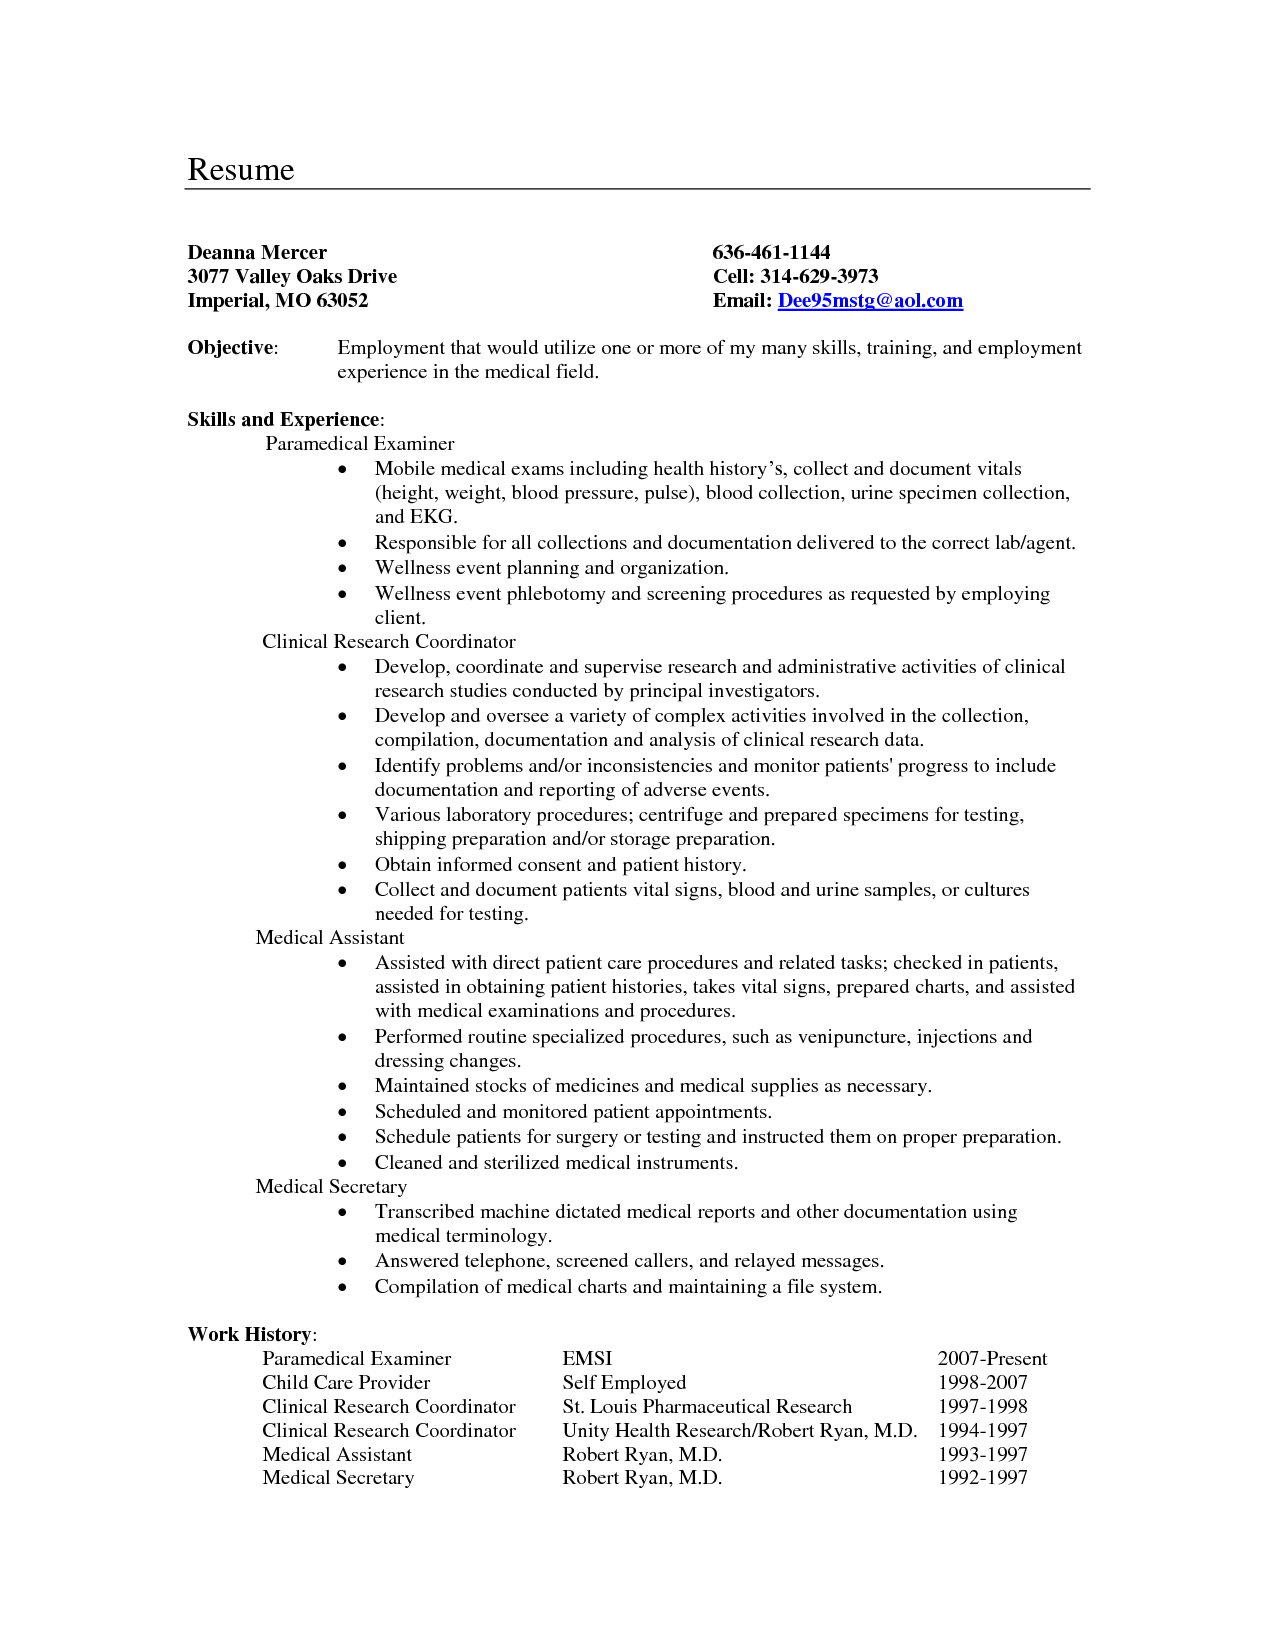 Medical Secretary Resume Objective Examples Resume